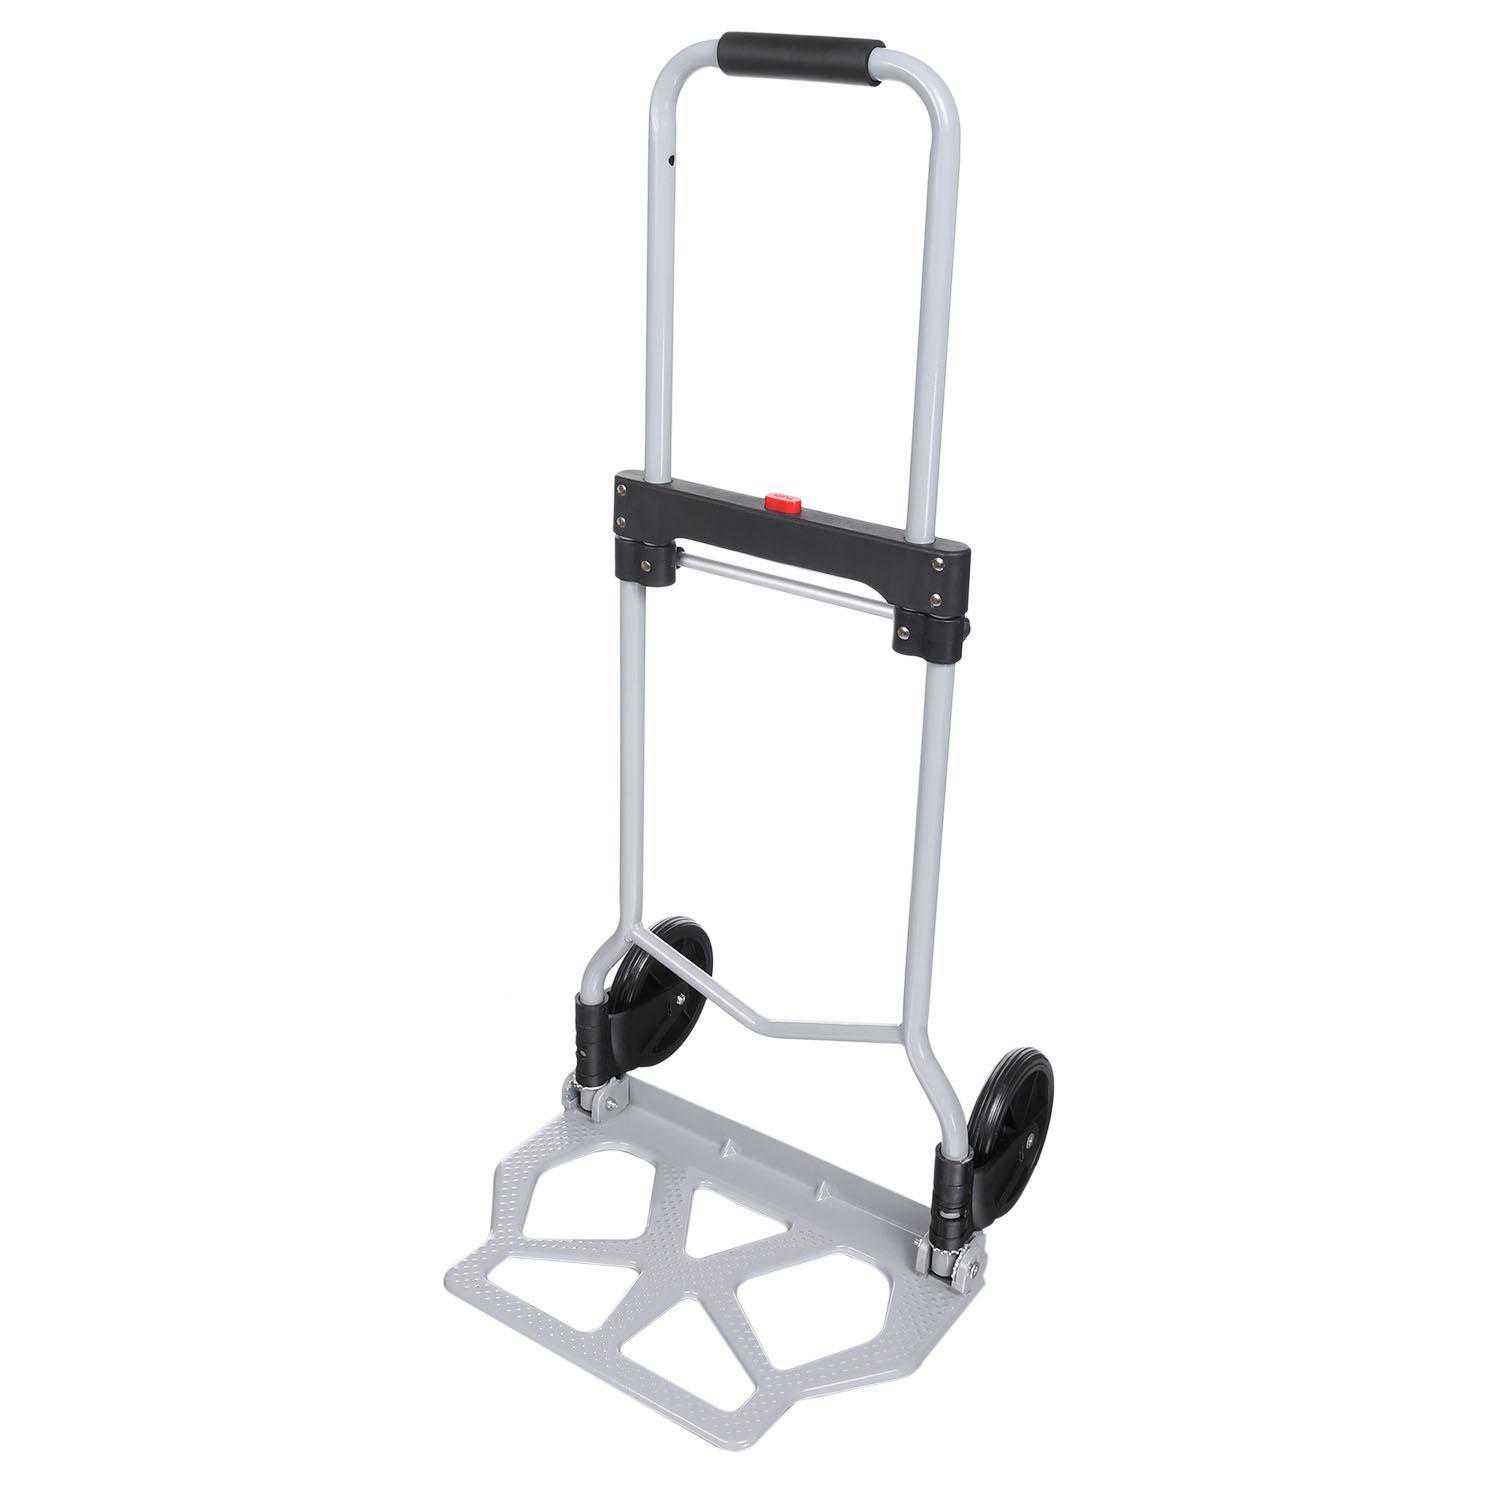 Portable Folding Hand Truck Dolly Luggage Carts, Silver, 220 lbs Capacity, Industrial/Travel/Shopping WLT